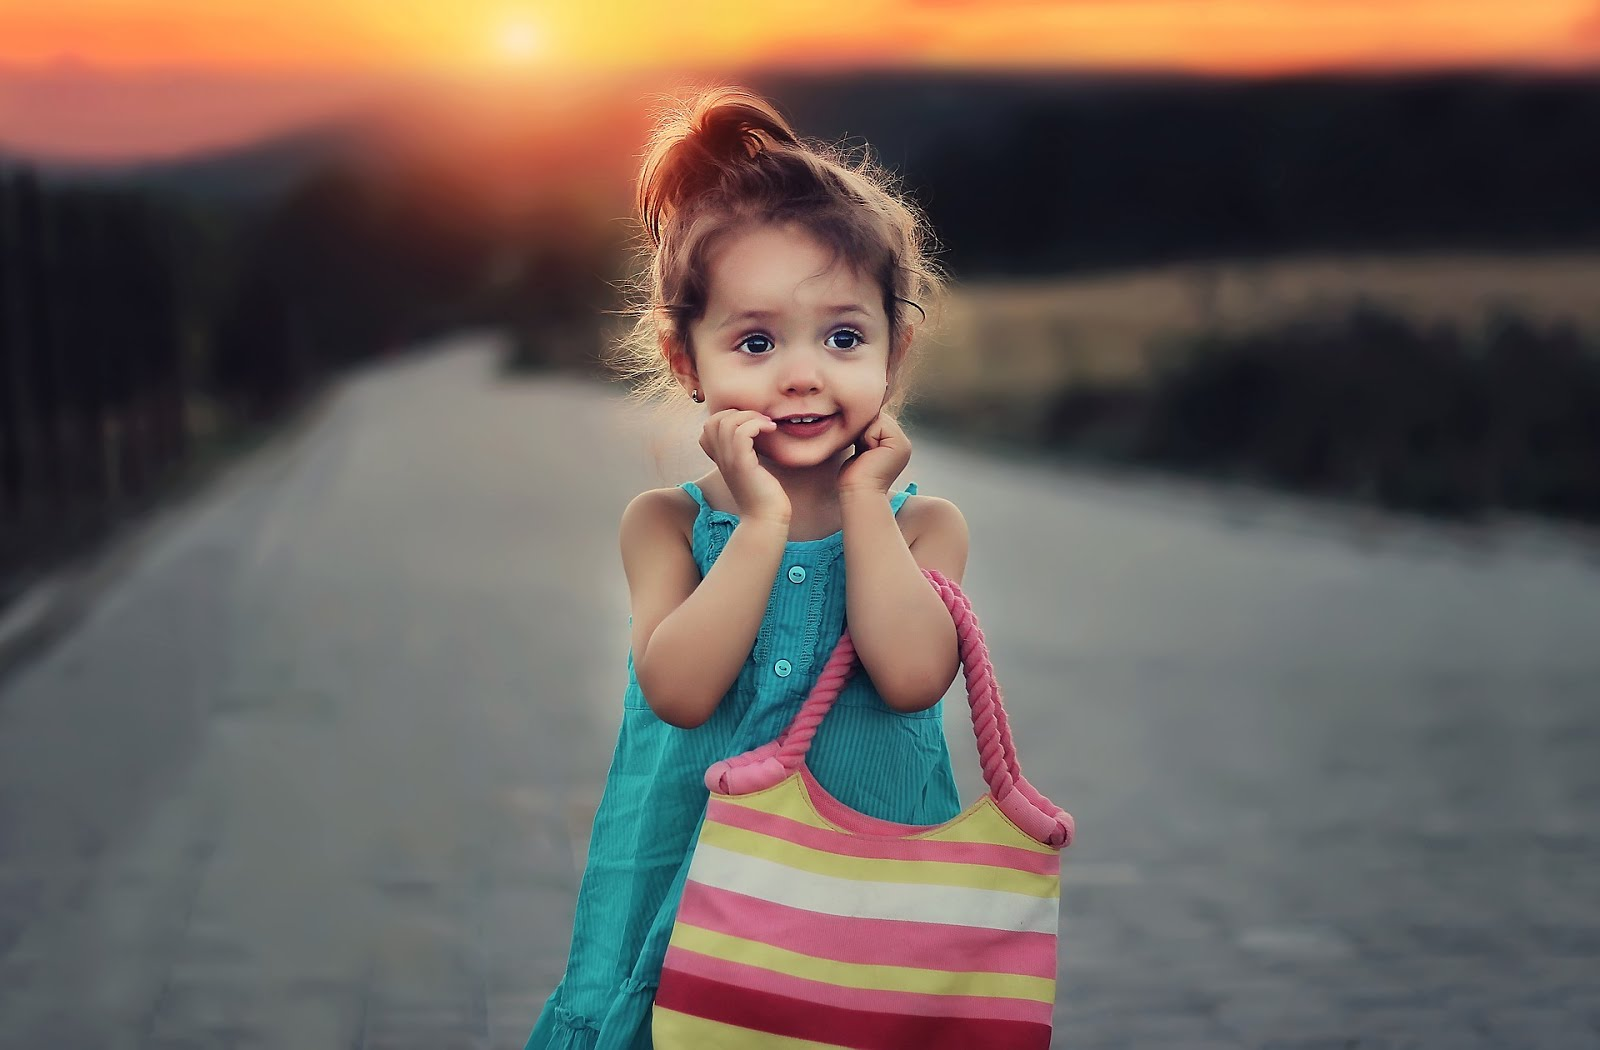 cute inocent baby girls profile picture hd llike dp stylis cute